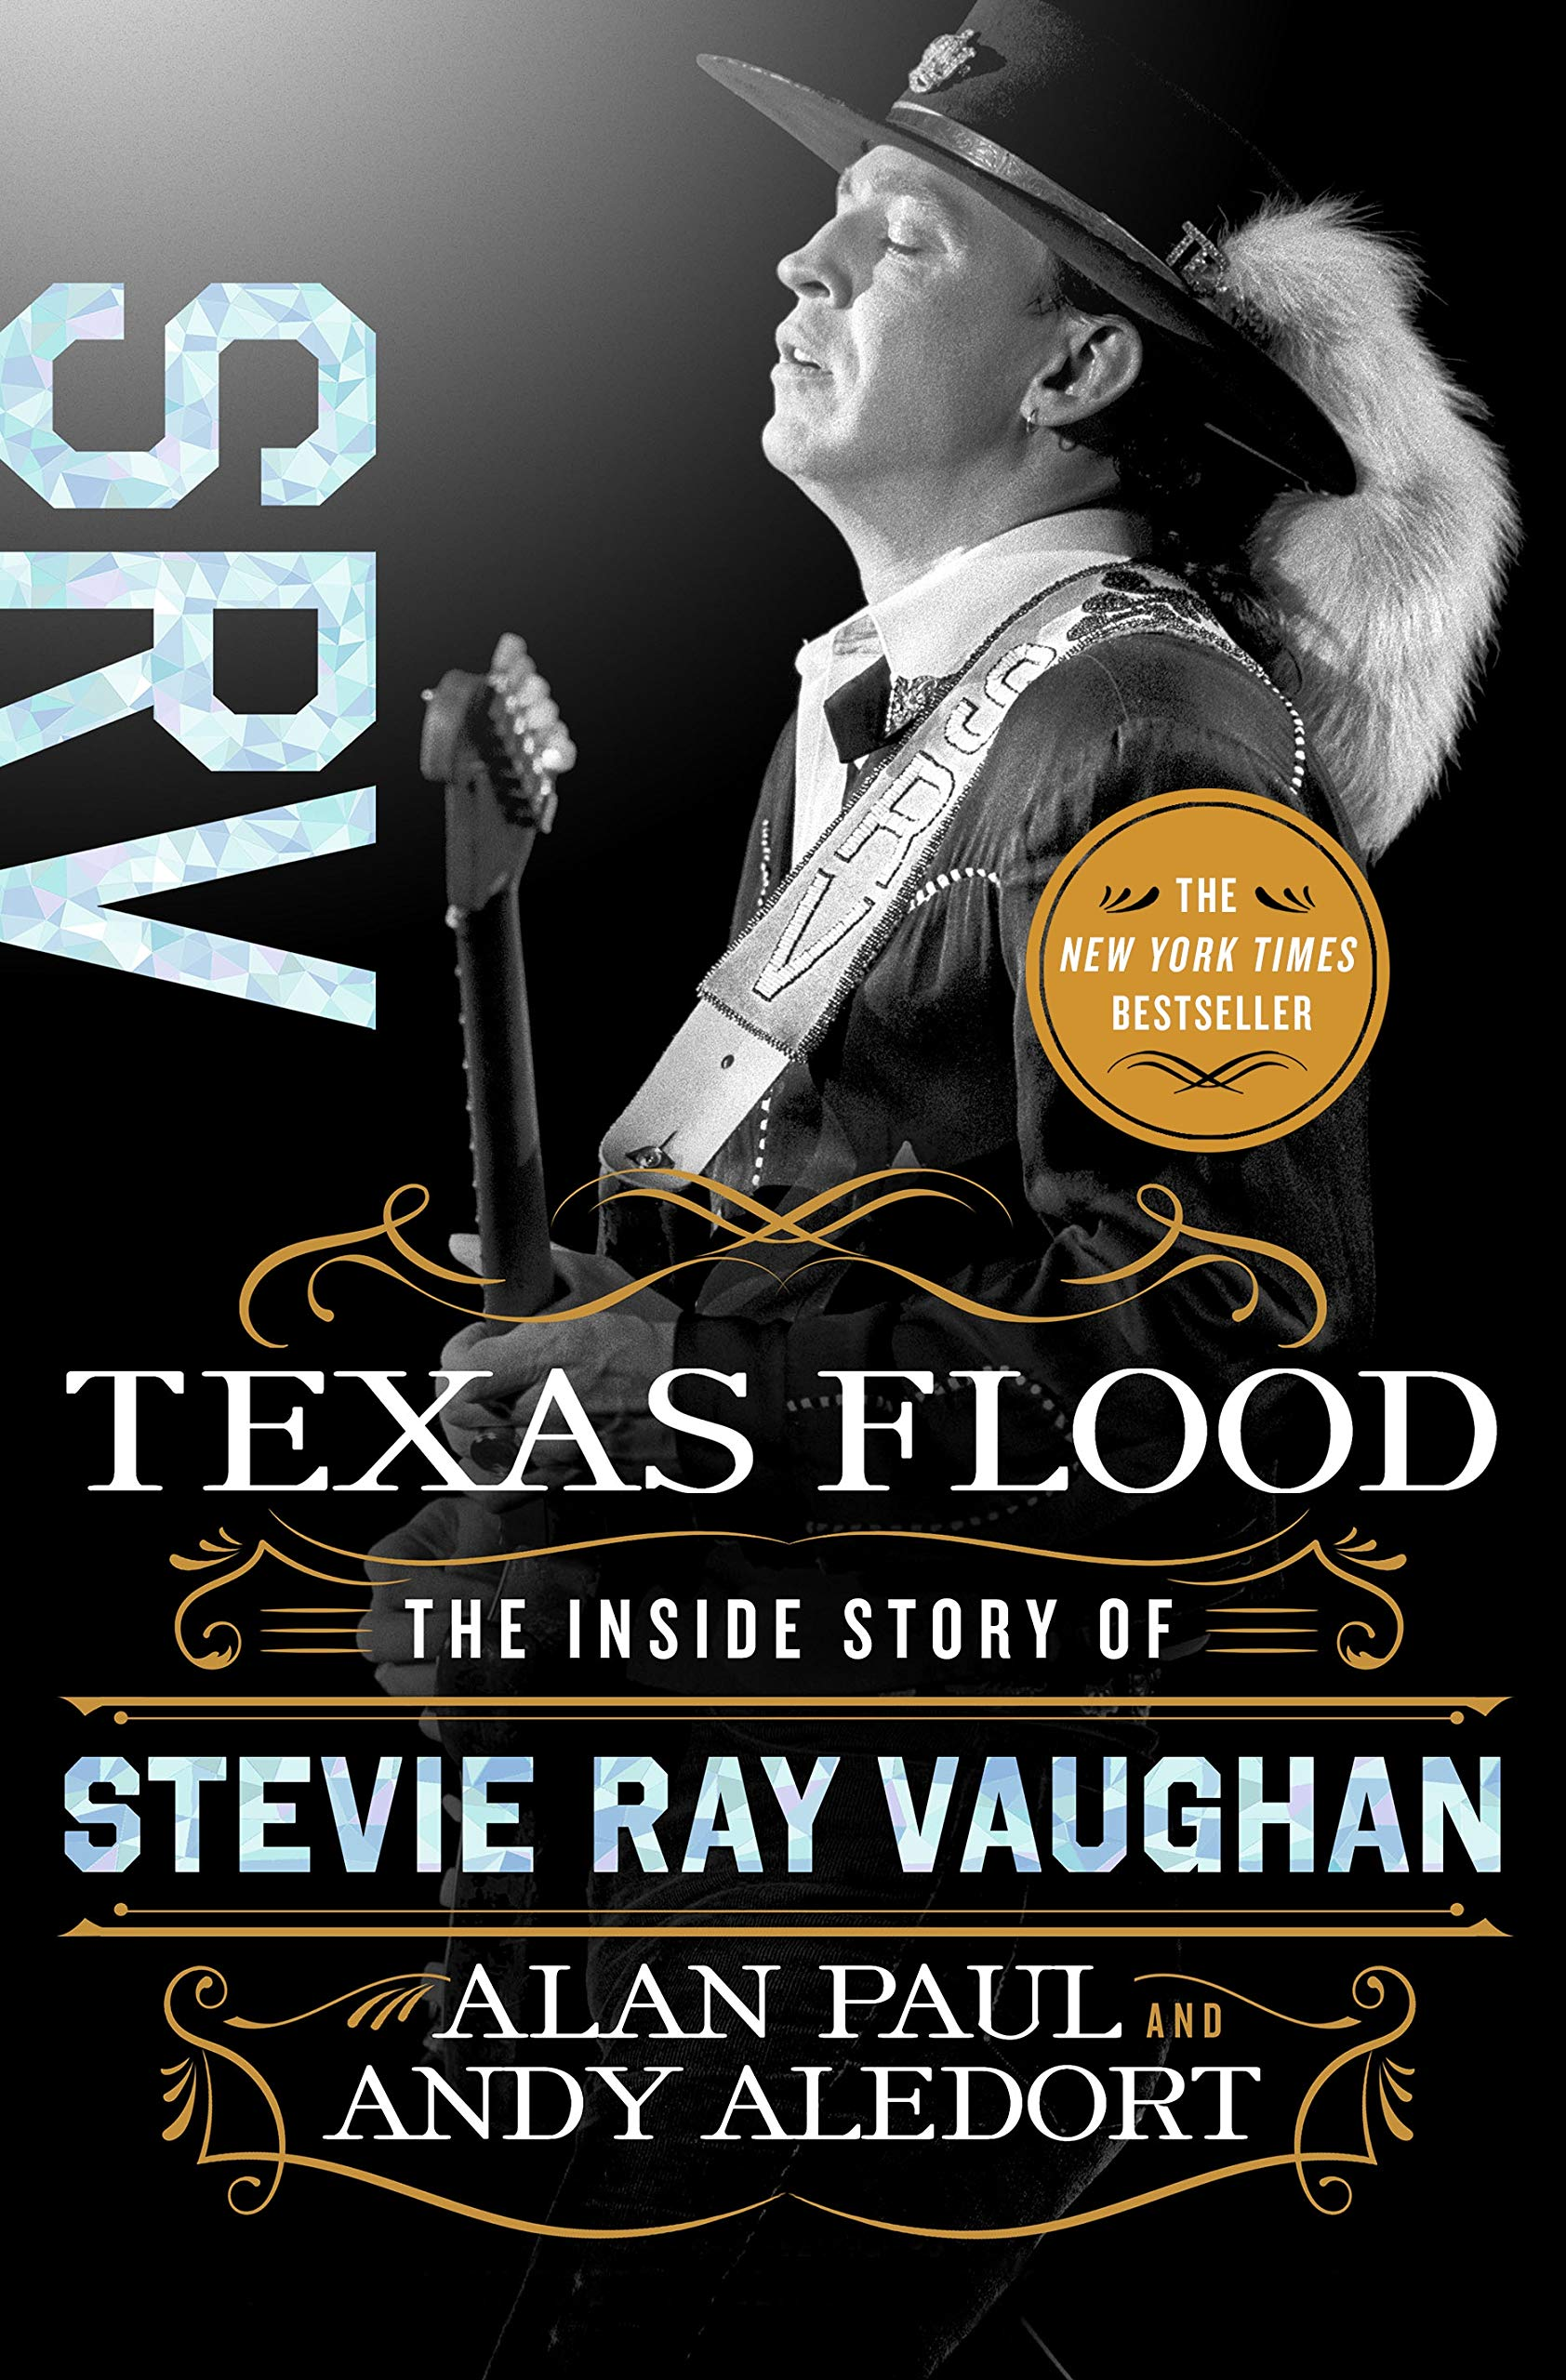 Promotional image for Martin Bandyke Under Covers for January 2020: Martin Bandyke interviews Alan Paul, co-author of Texas Flood: The Inside Story of Stevie Ray Vaughan. podcast